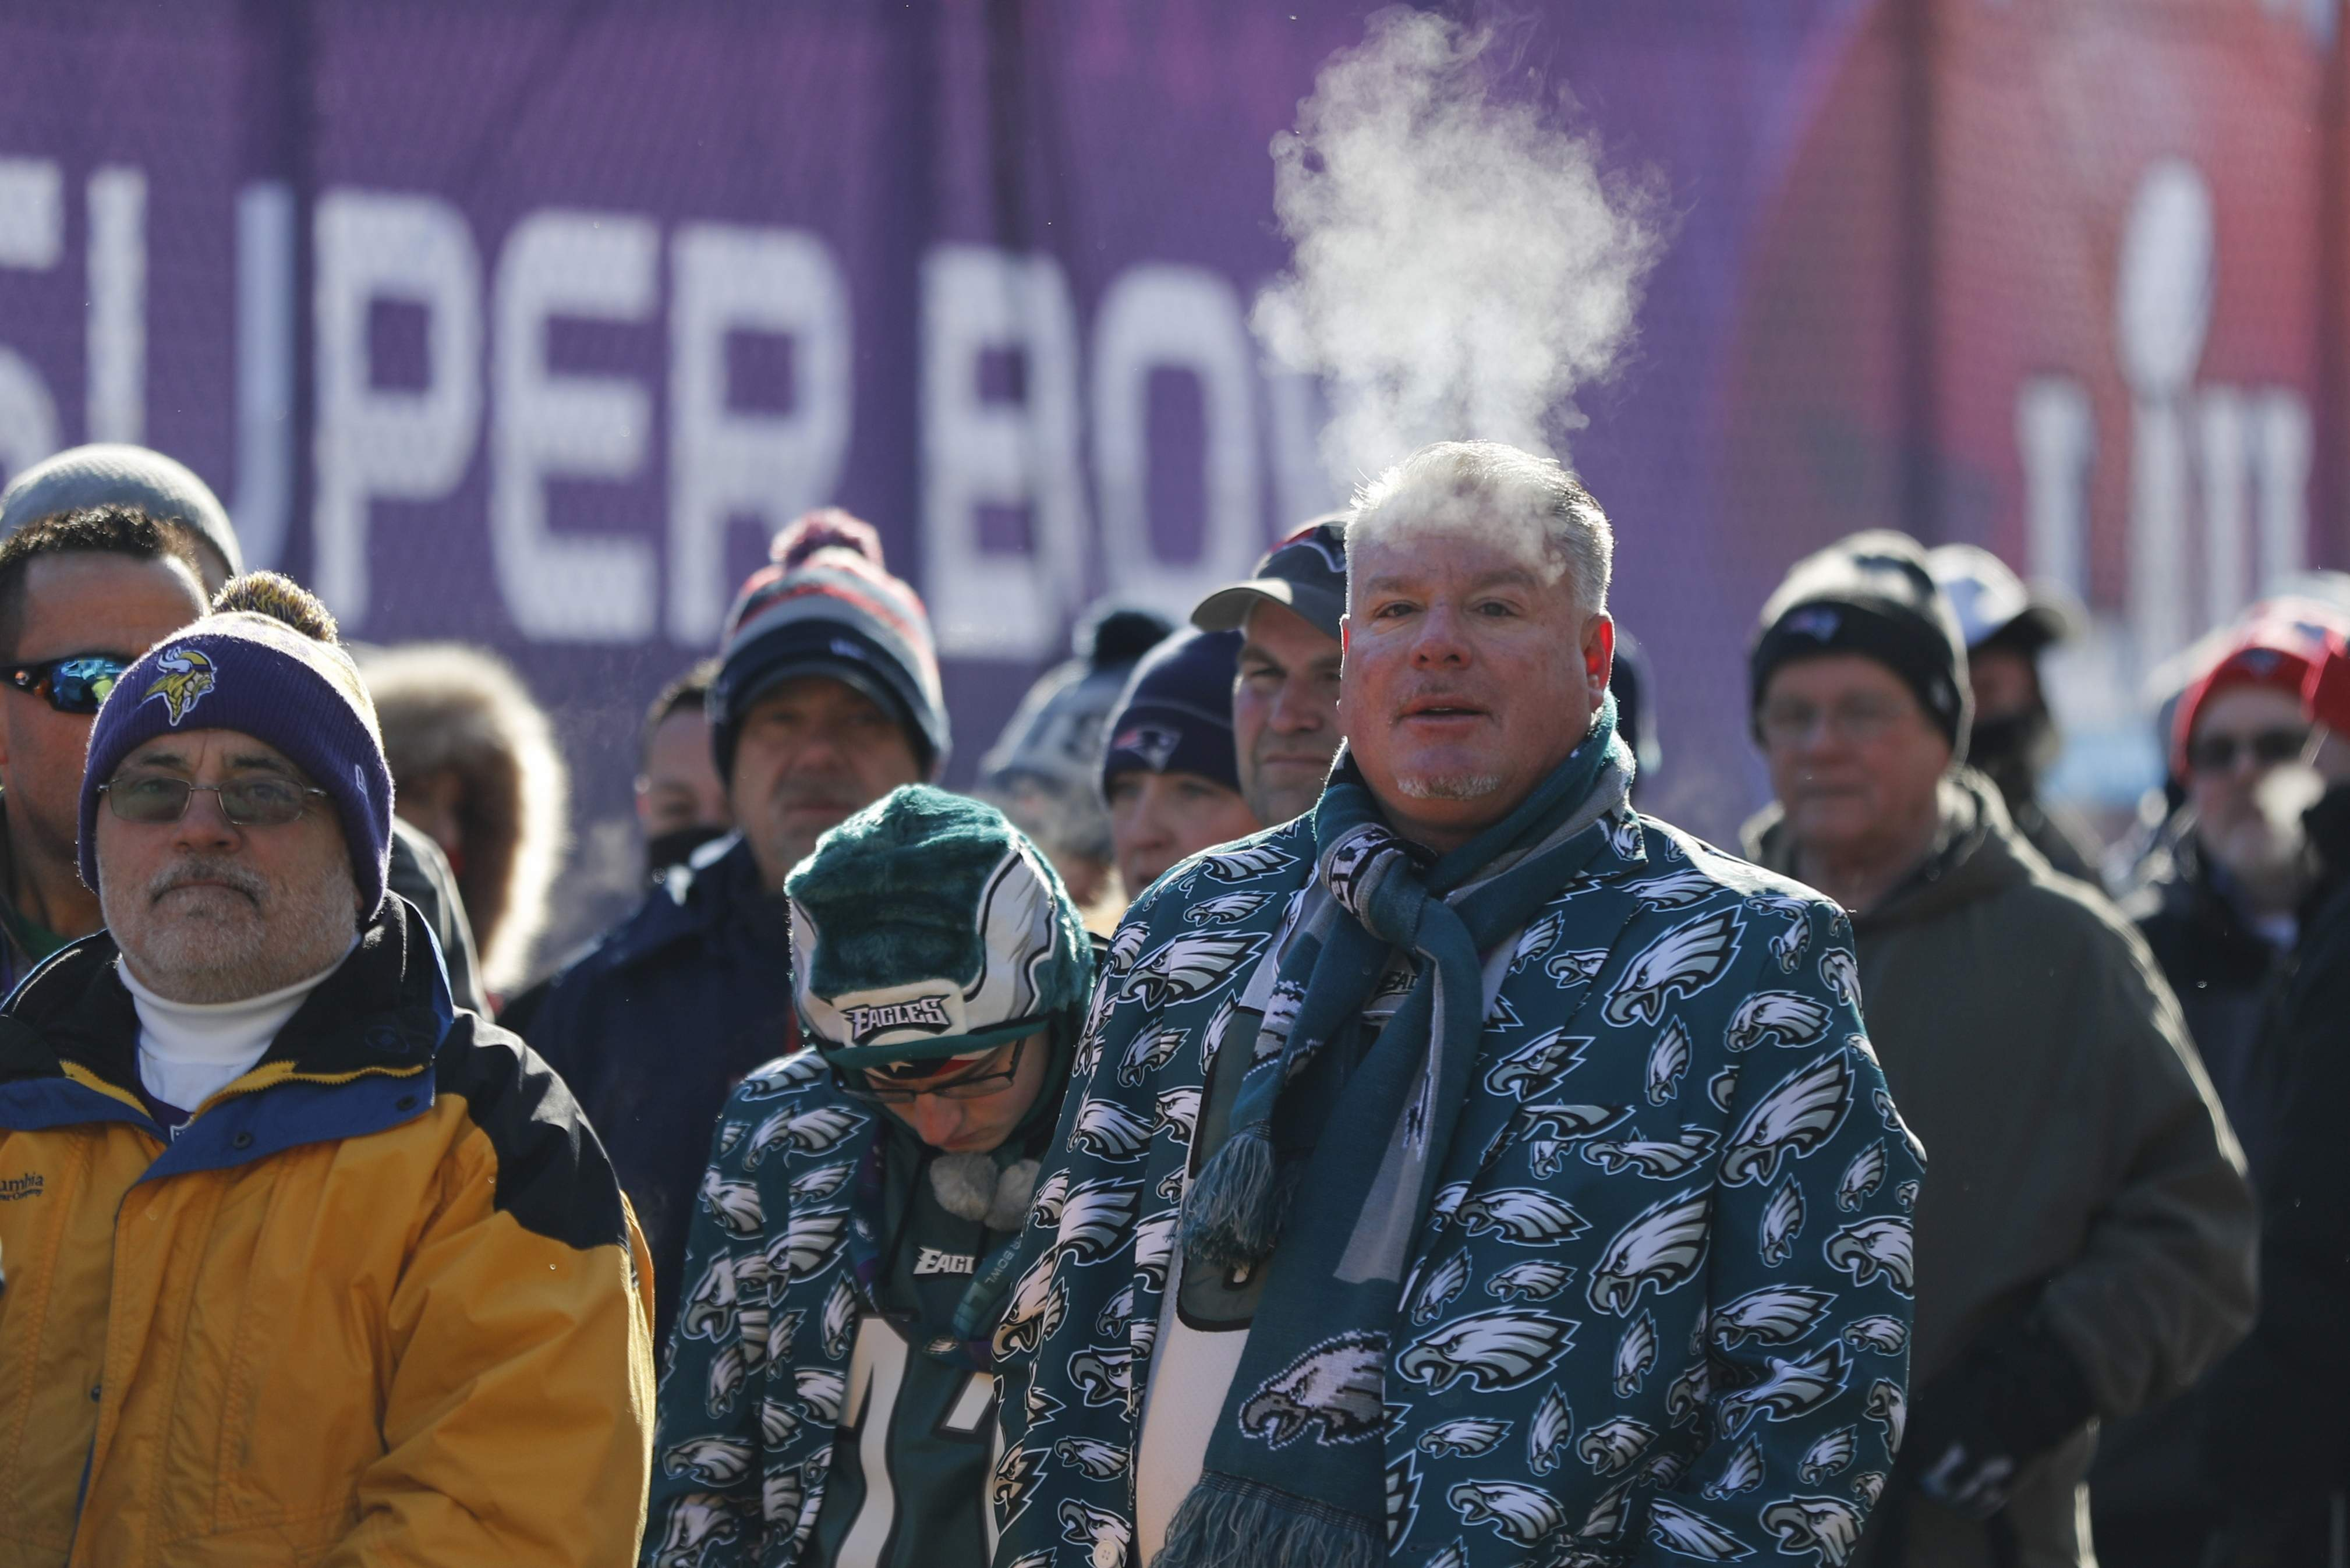 Fans brave cold temperatures as they wait to get into U.S. Bank Stadium before the NFL Super Bowl 52 football game between the Philadelphia Eagles and the New England Patriots Sunday, Feb. 4, 2018, in Minneapolis. (AP Photo/Jeff Roberson)